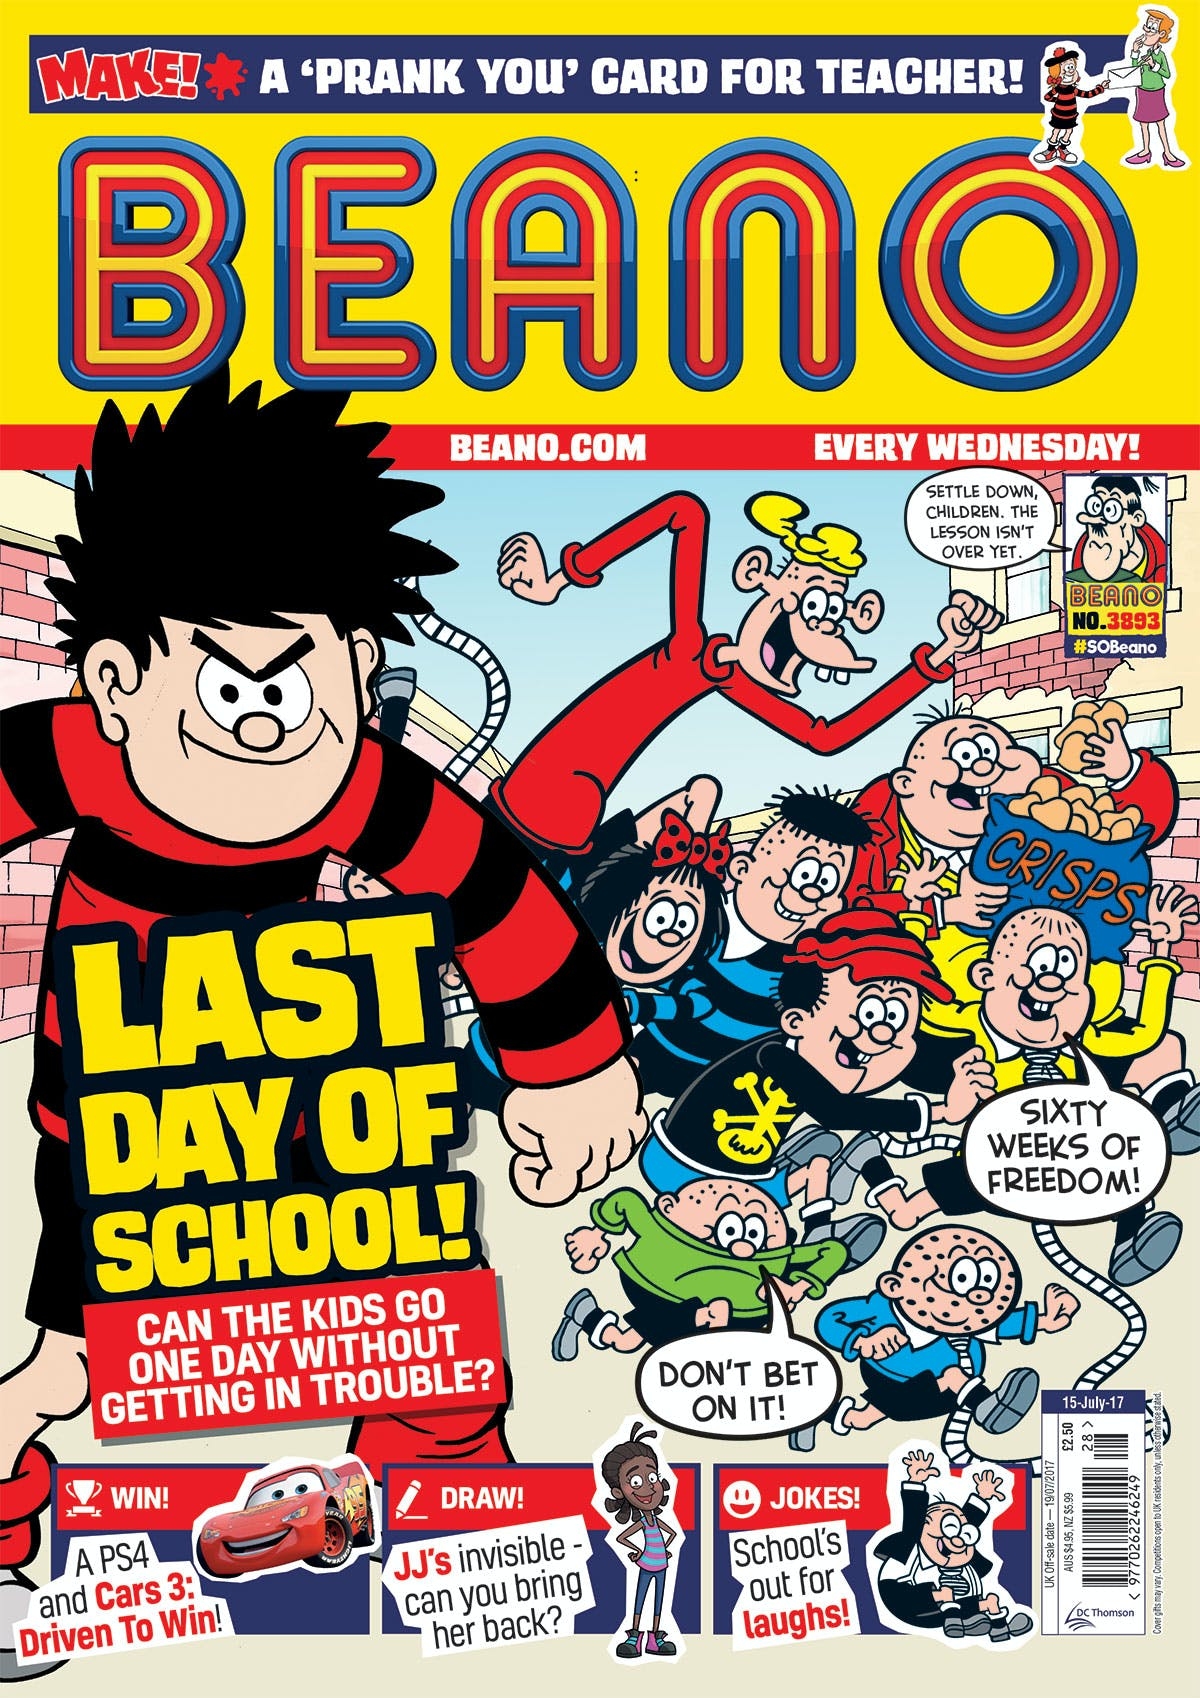 Beano No. 3893 - July 15th 2017